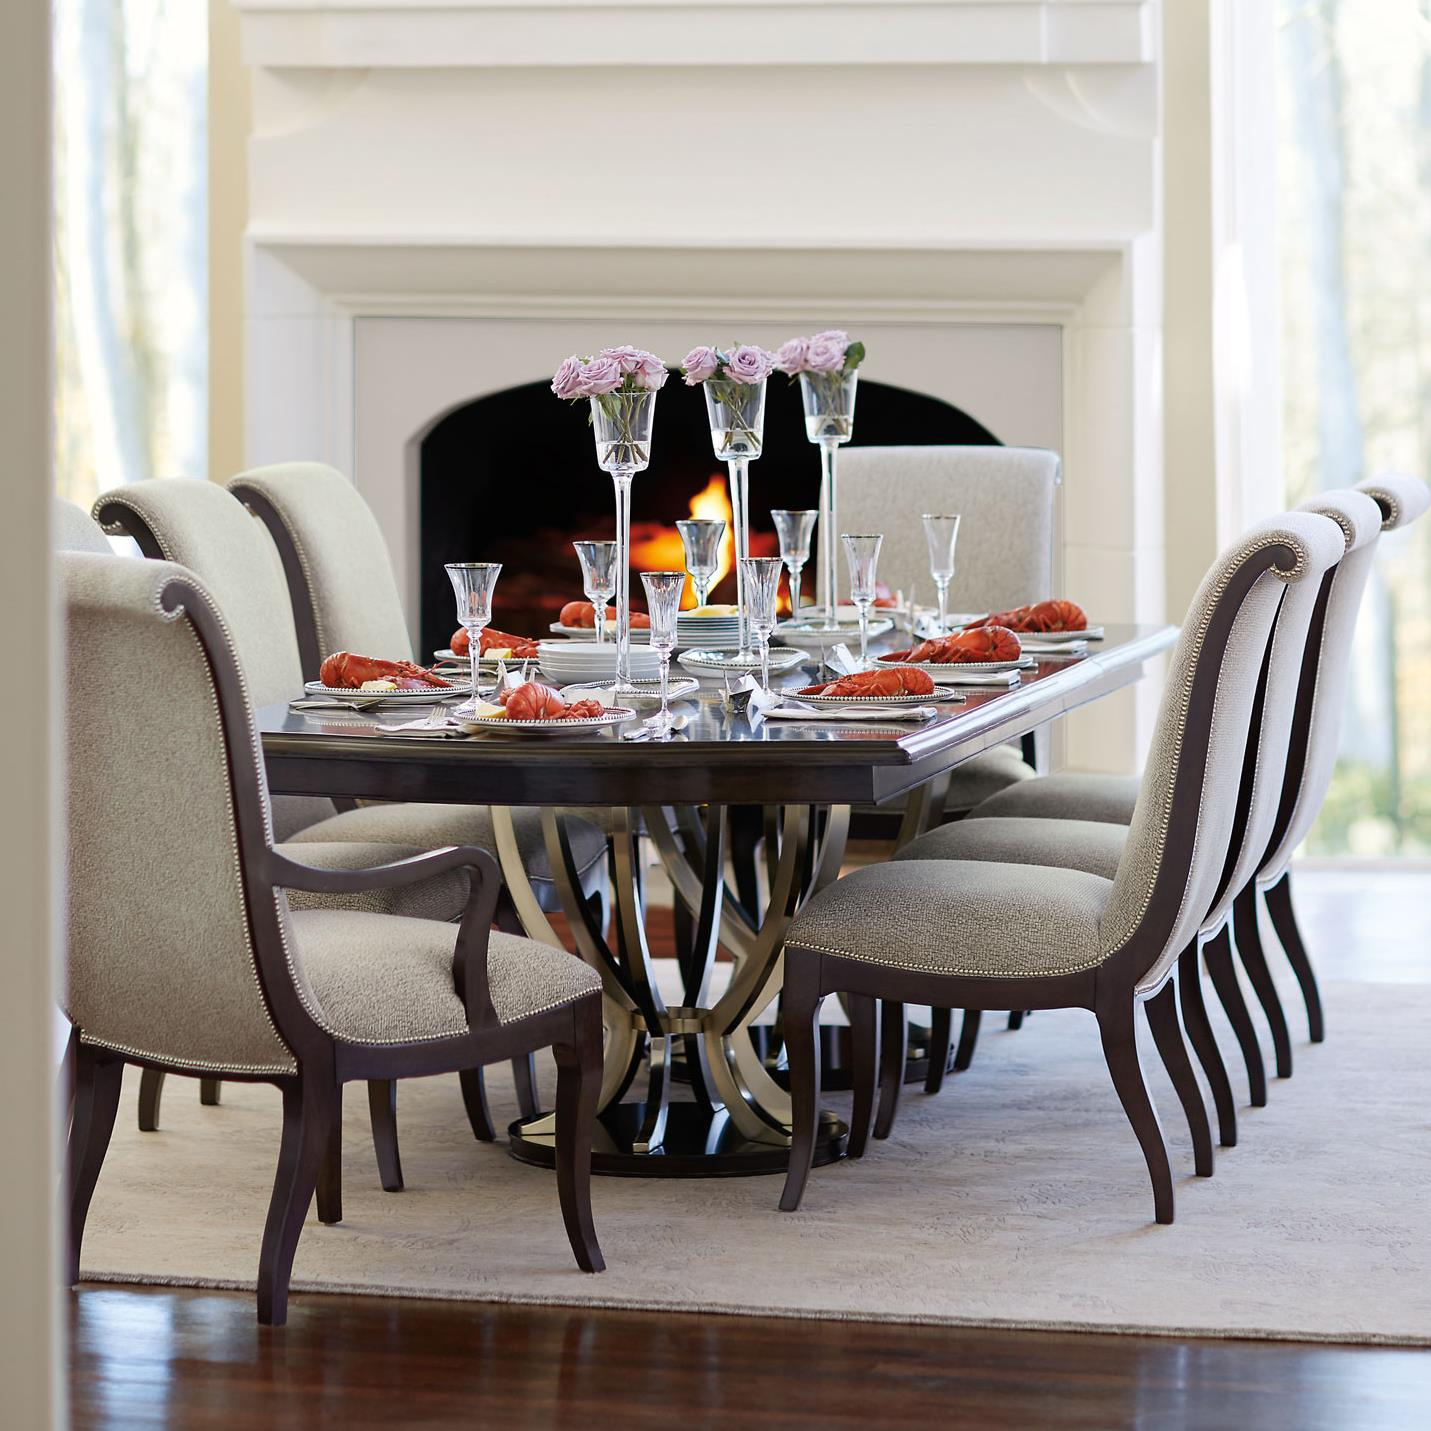 Setting Dining Room Table: Bernhardt Miramont 9 Piece Dining Set With Double Pedestal